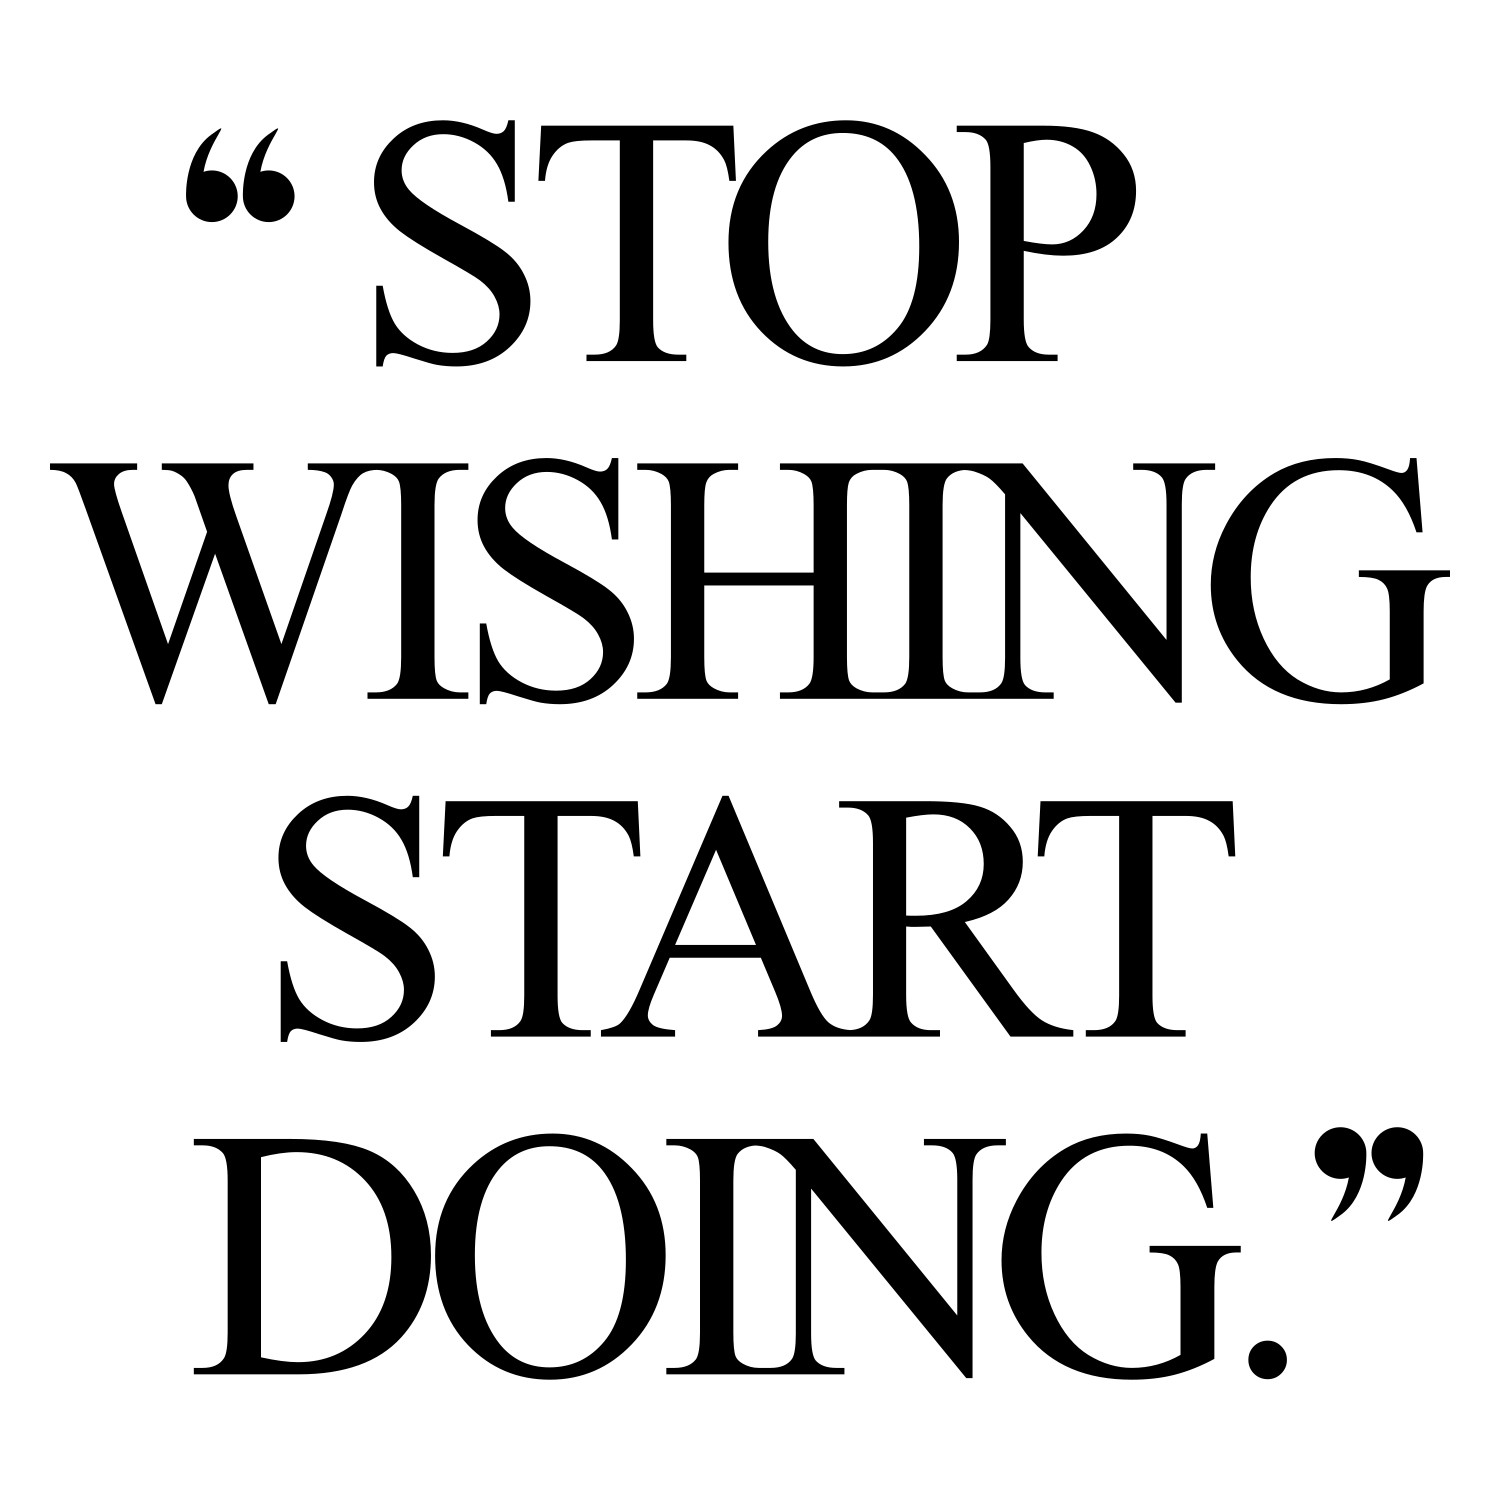 Stop wishing start doing! Browse our collection of inspirational weight loss quotes and get instant exercise and training motivation. Transform positive thoughts into positive actions and get fit, healthy and happy! https://www.spotebi.com/workout-motivation/stop-wishing-start-doing-inspirational-weight-loss-quote/